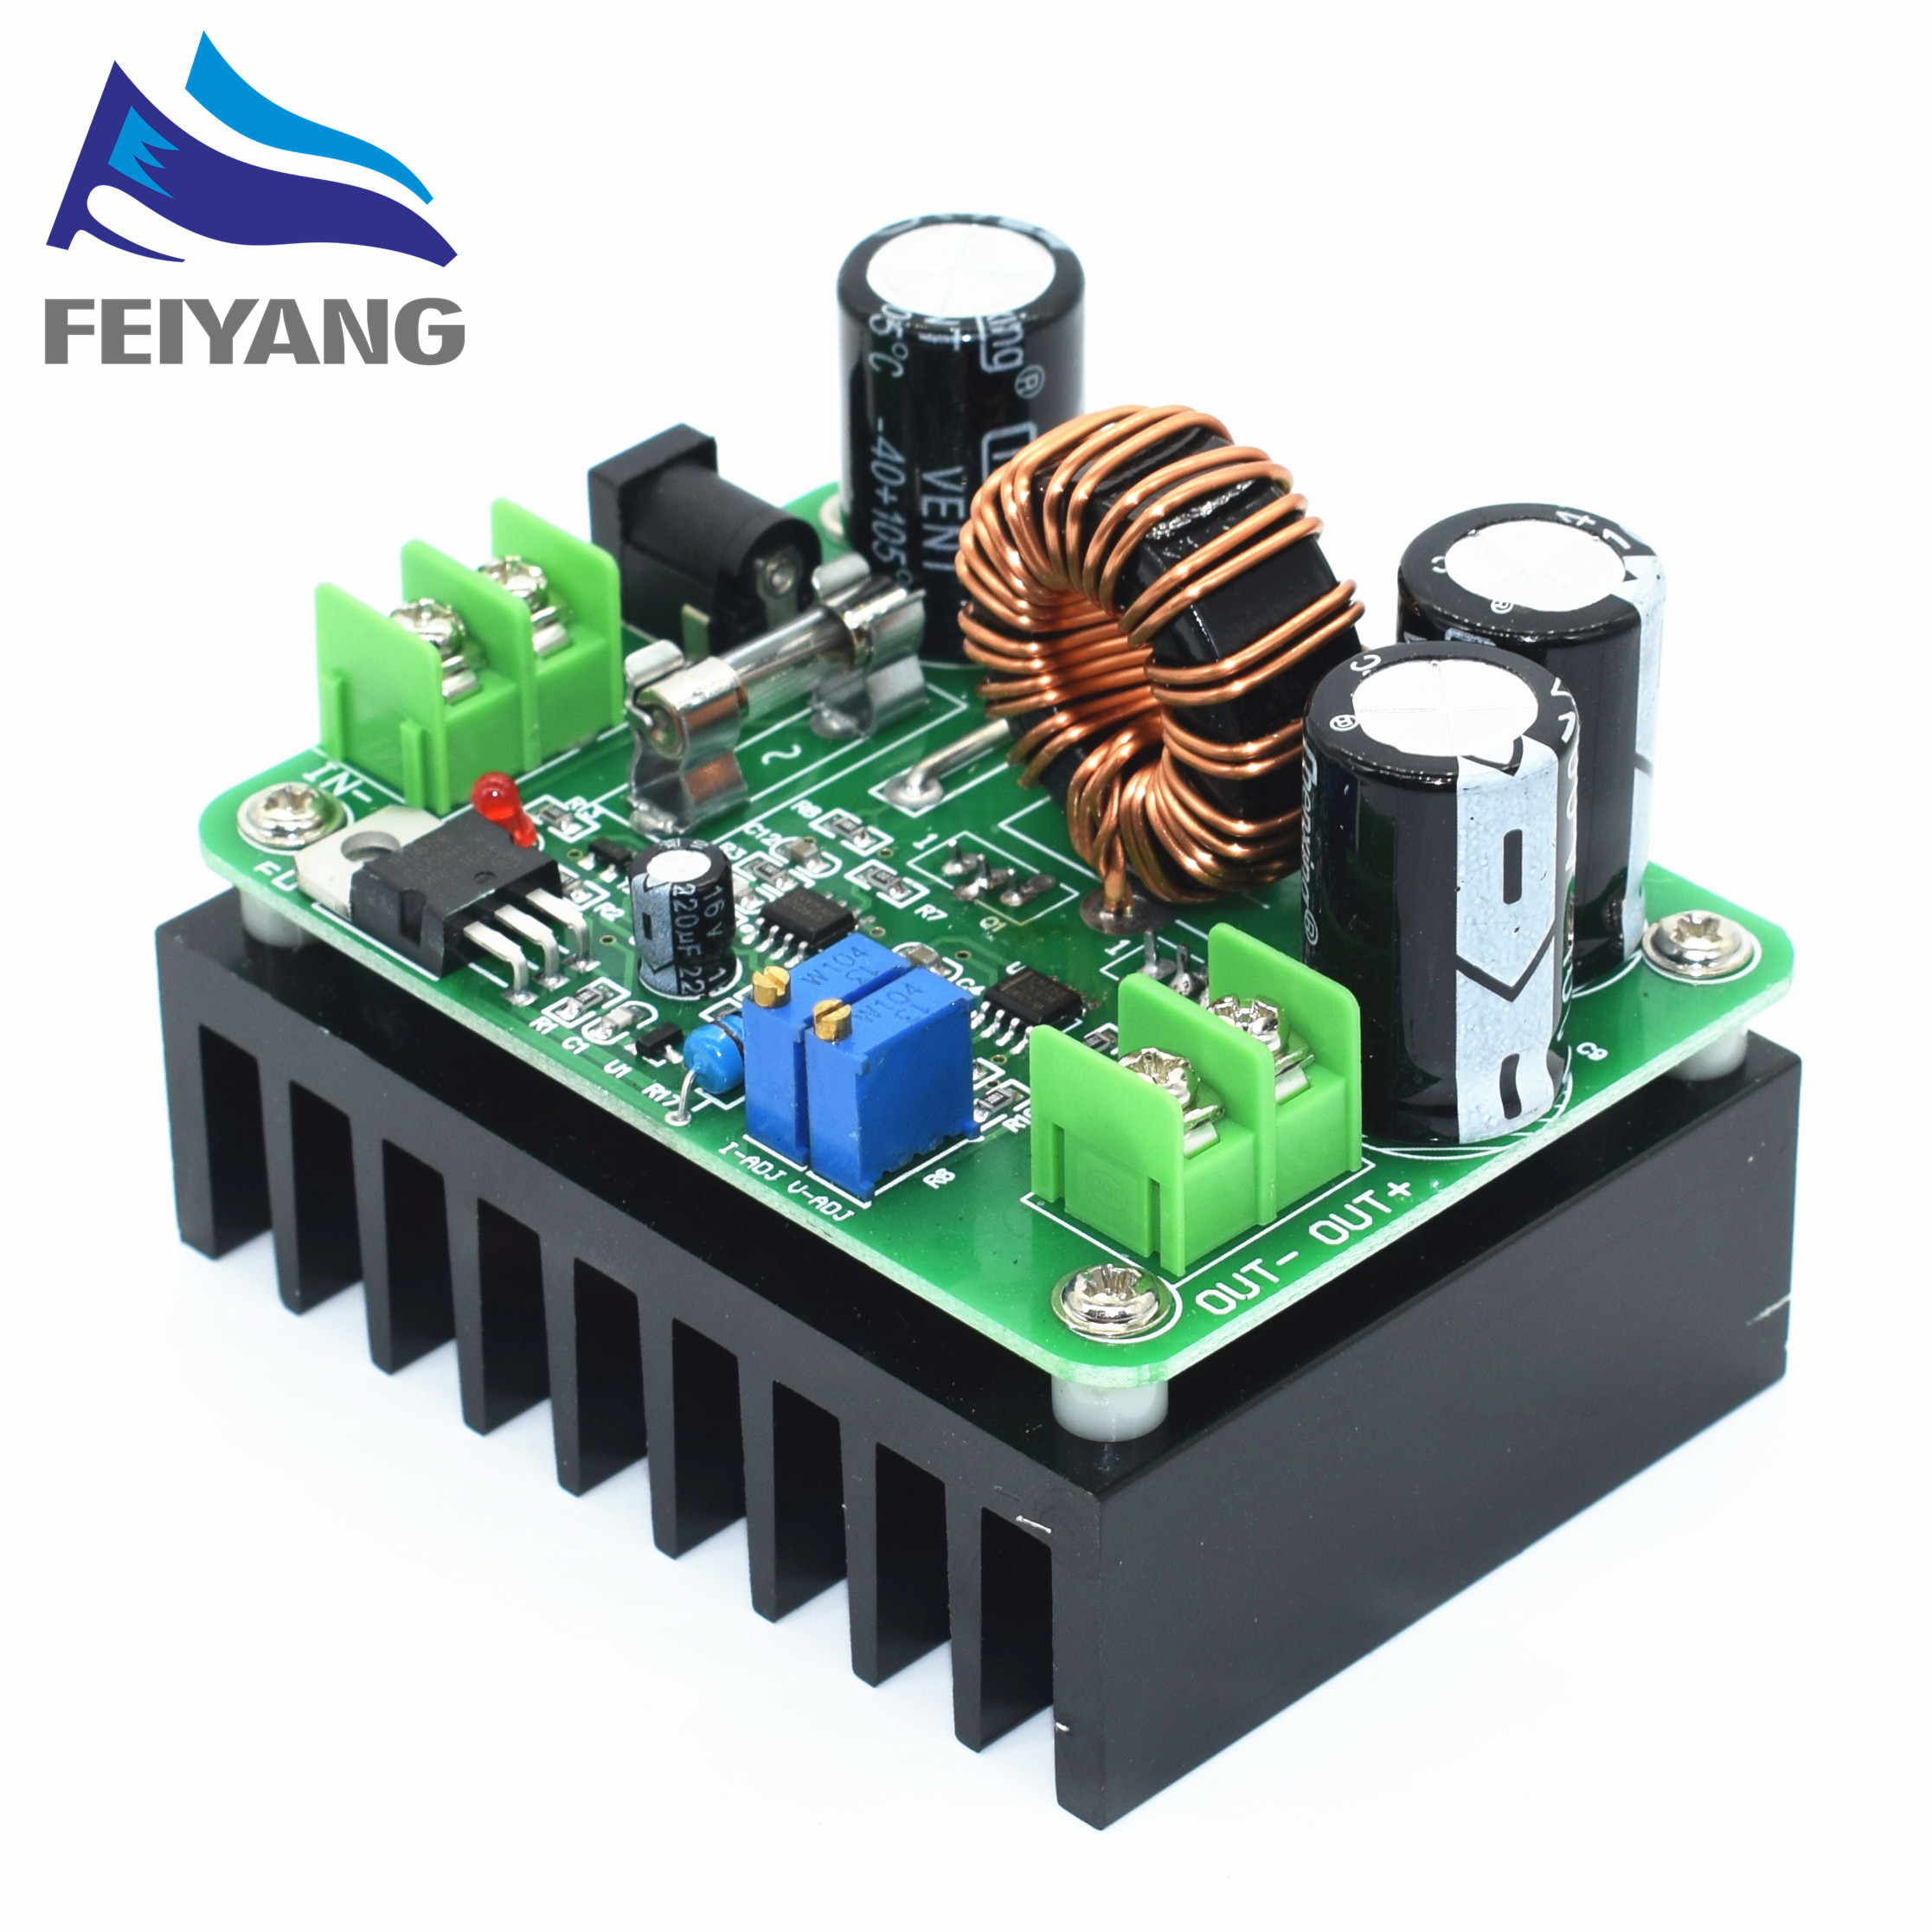 1pcs DC DC 600W 10 60V To 12 80V Boost Converter Step Up Module Car Power